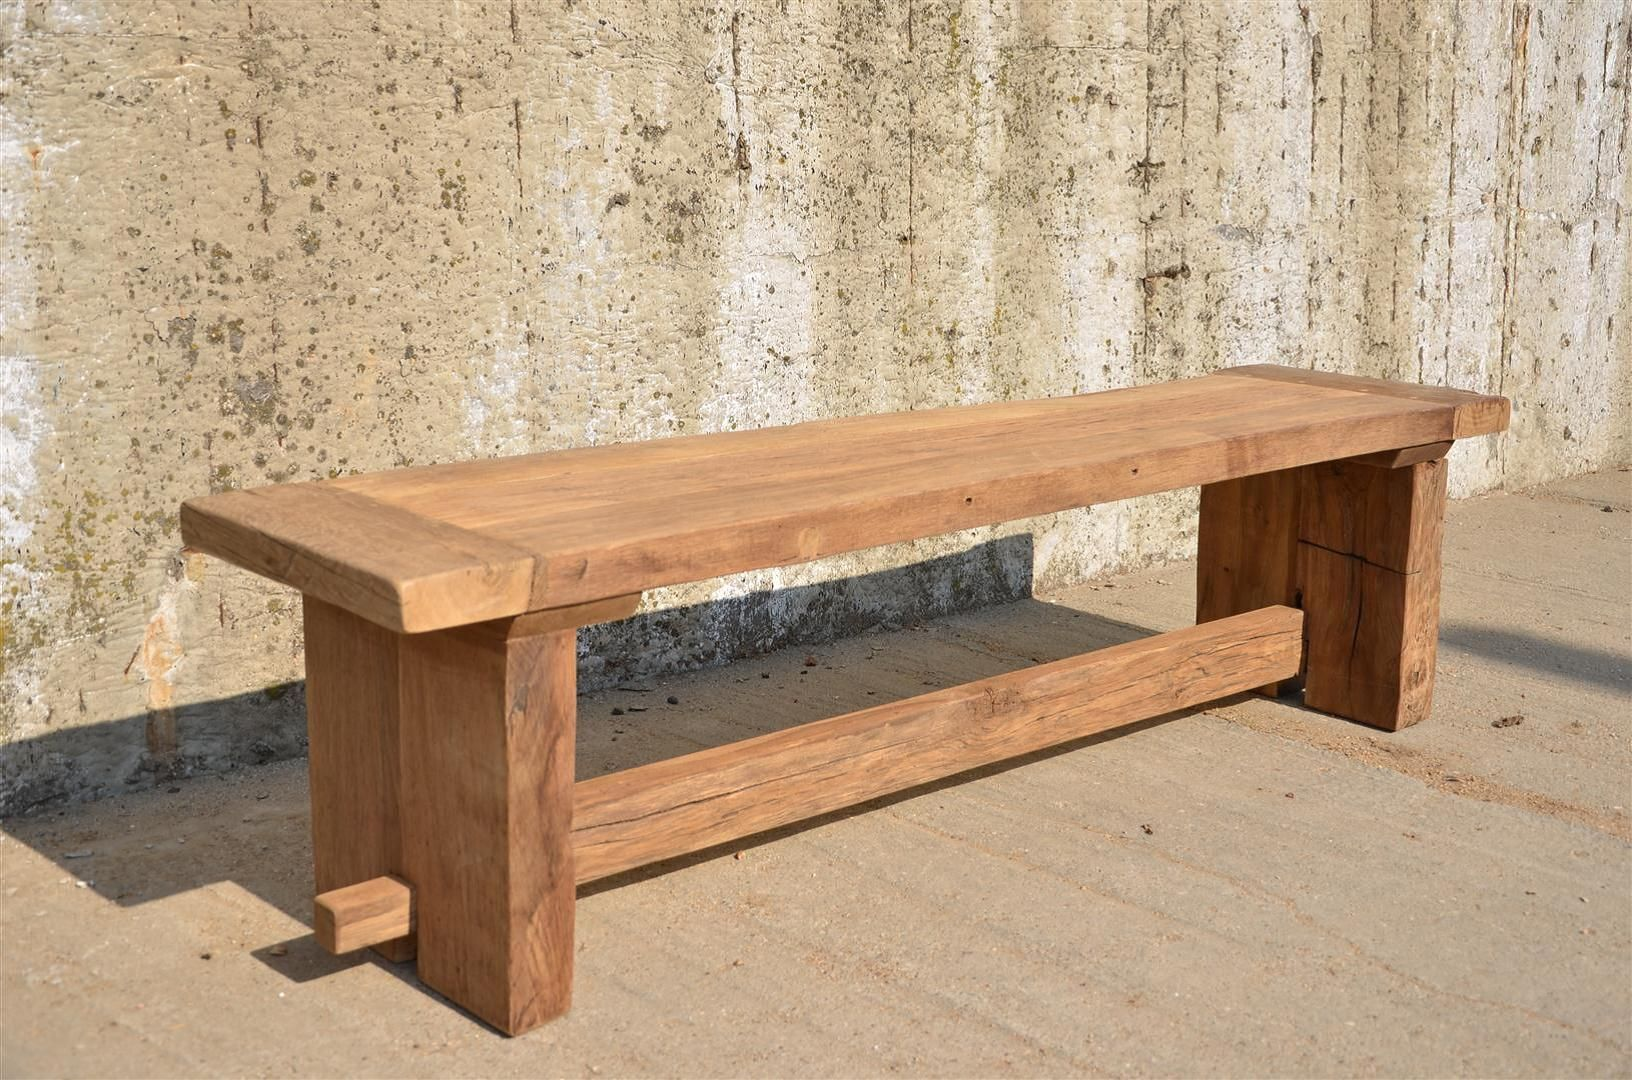 Brand Spanking New Limited Edition Reclaimed Wood Furniture Pieces ...